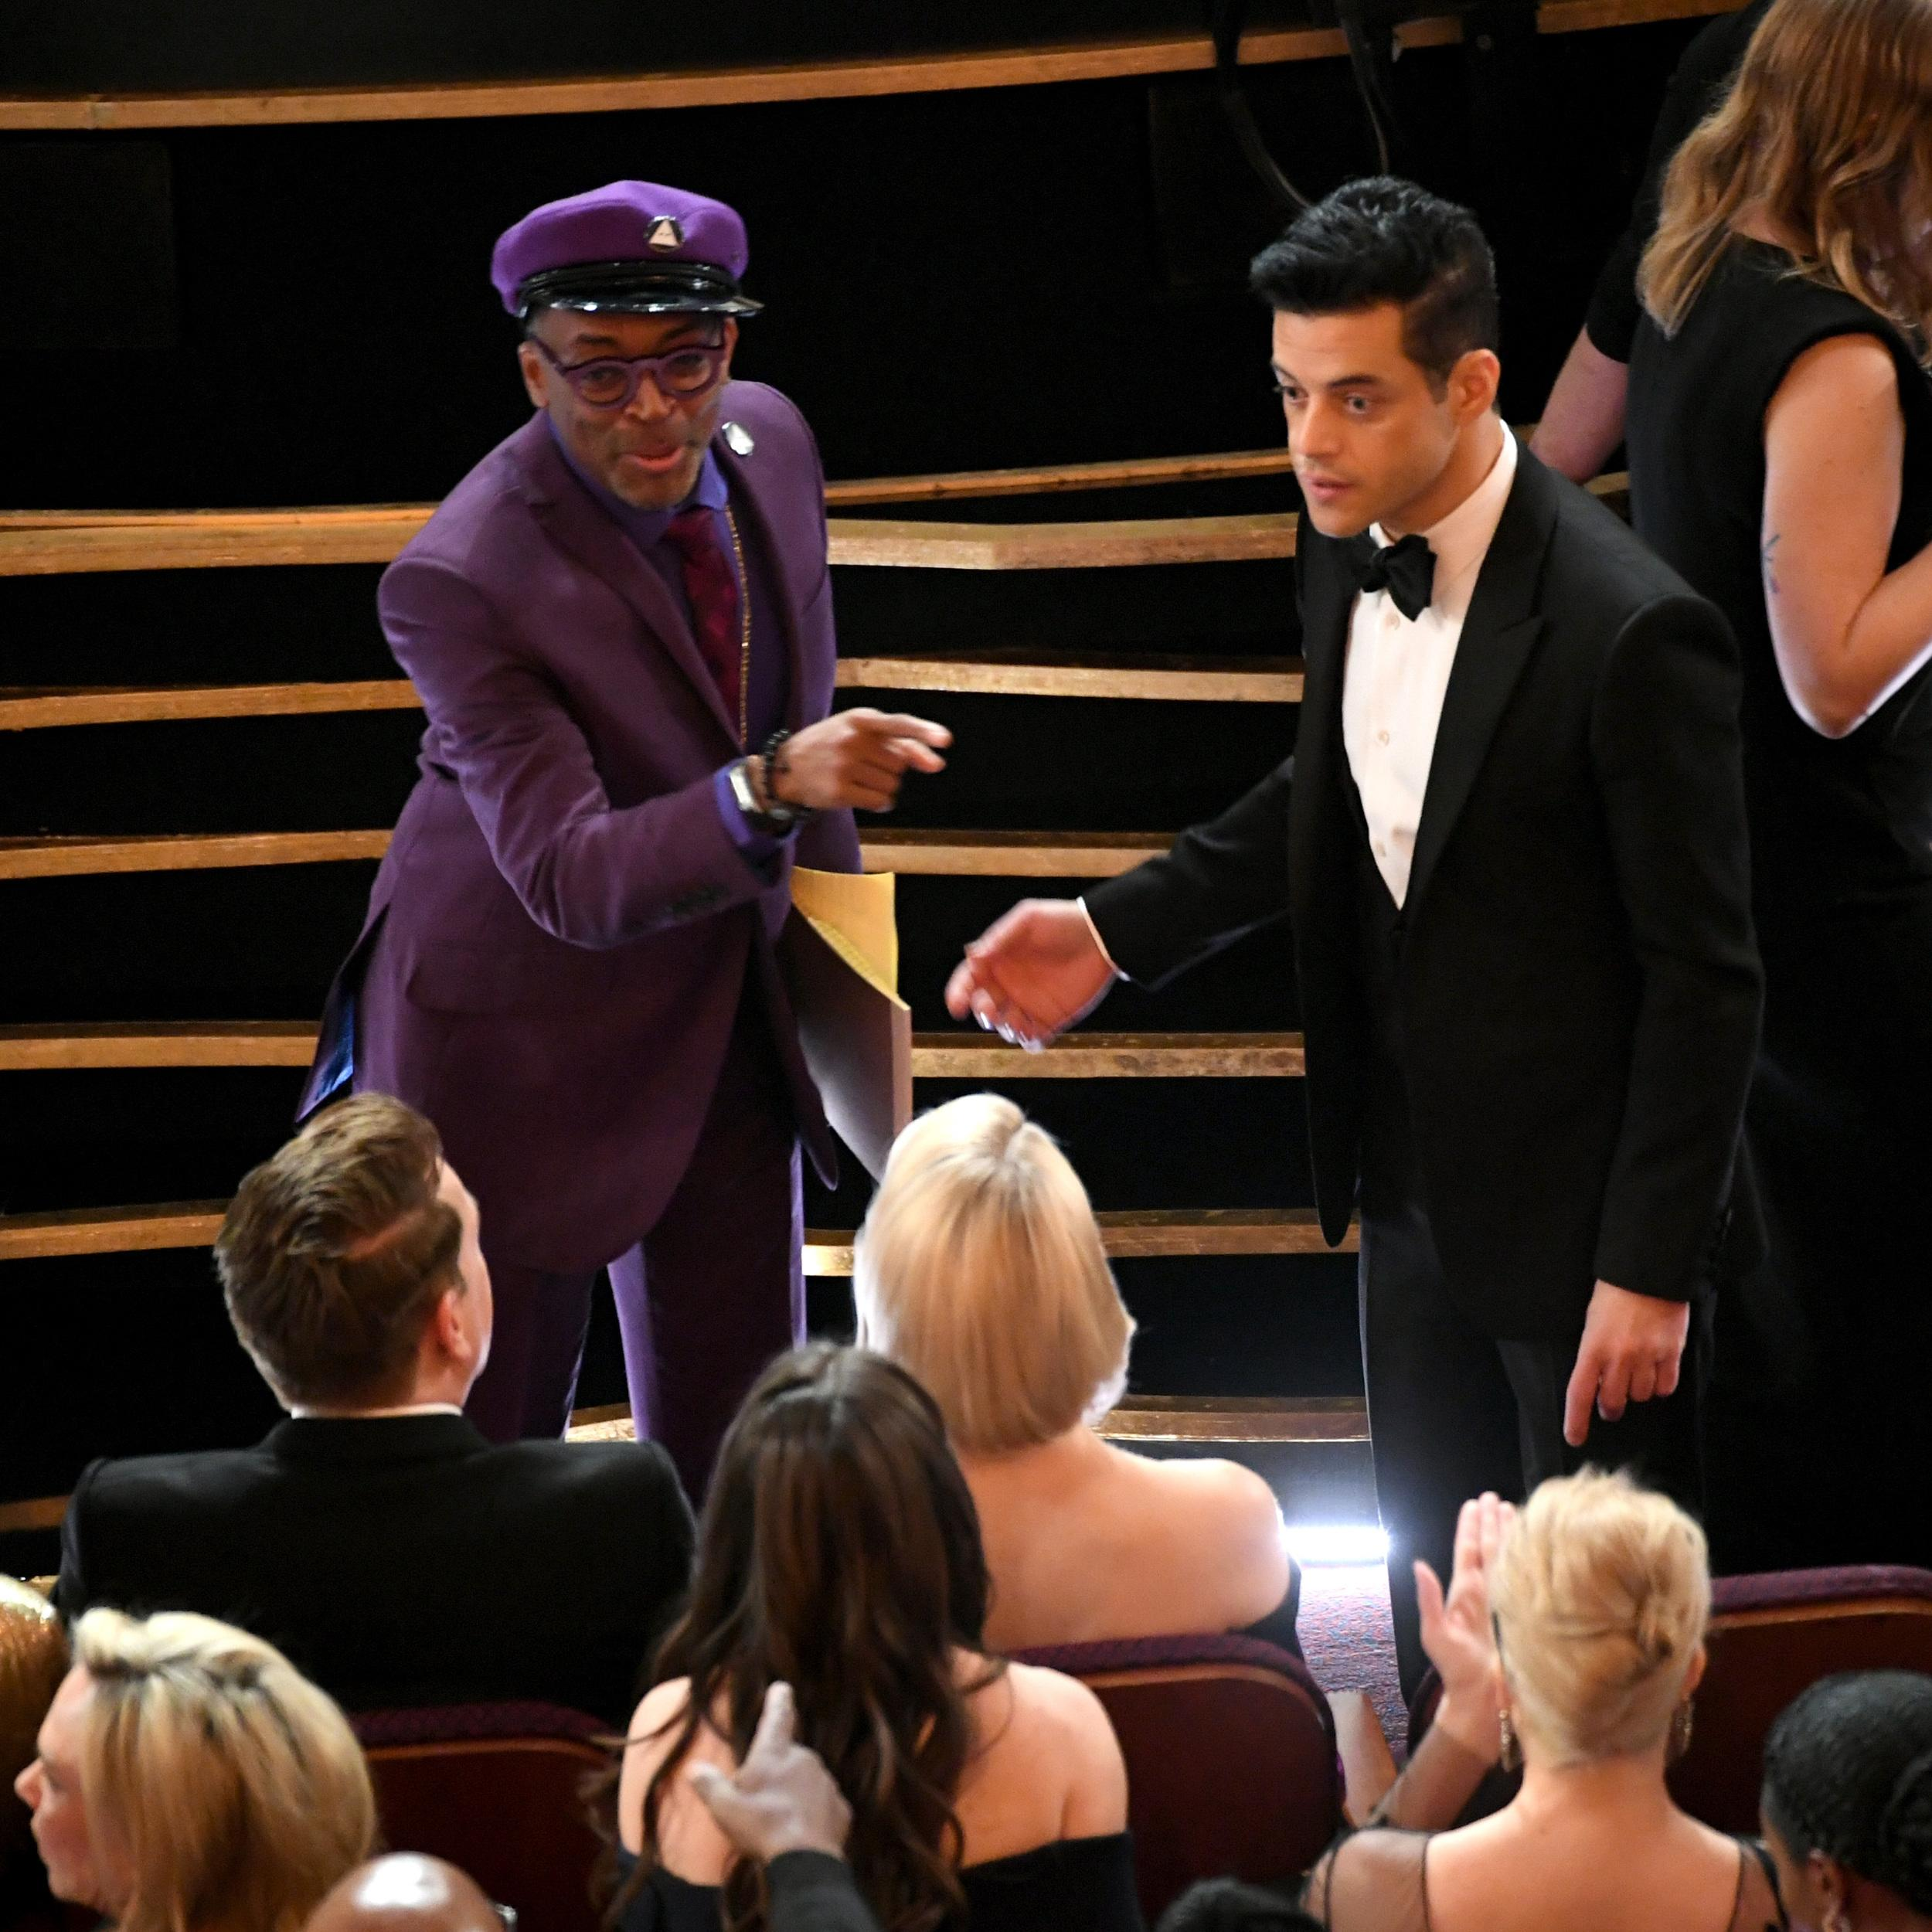 HOLLYWOOD, CALIFORNIA - FEBRUARY 24: (EDITORS NOTE: Retransmission with alternate crop.) (L-R) Spike Lee and Rami Malek attend the 91st Annual Academy Awards at Dolby Theatre on February 24, 2019 in Hollywood, California. (Photo by Kevin Winter/Getty Images)